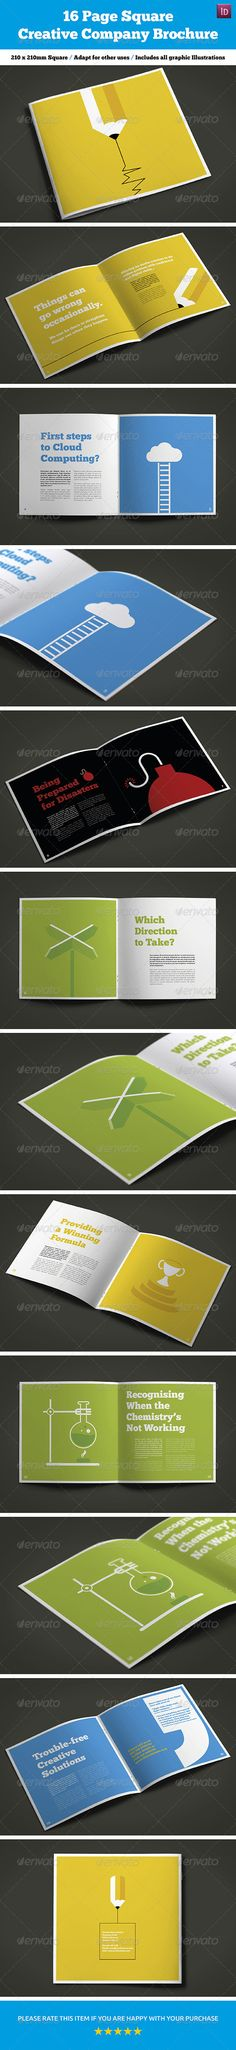 16 Page Square Creative Company Brochure — InDesign INDD #quote marks #consultancy • Available here → https://graphicriver.net/item/16-page-square-creative-company-brochure/7946903?ref=pxcr